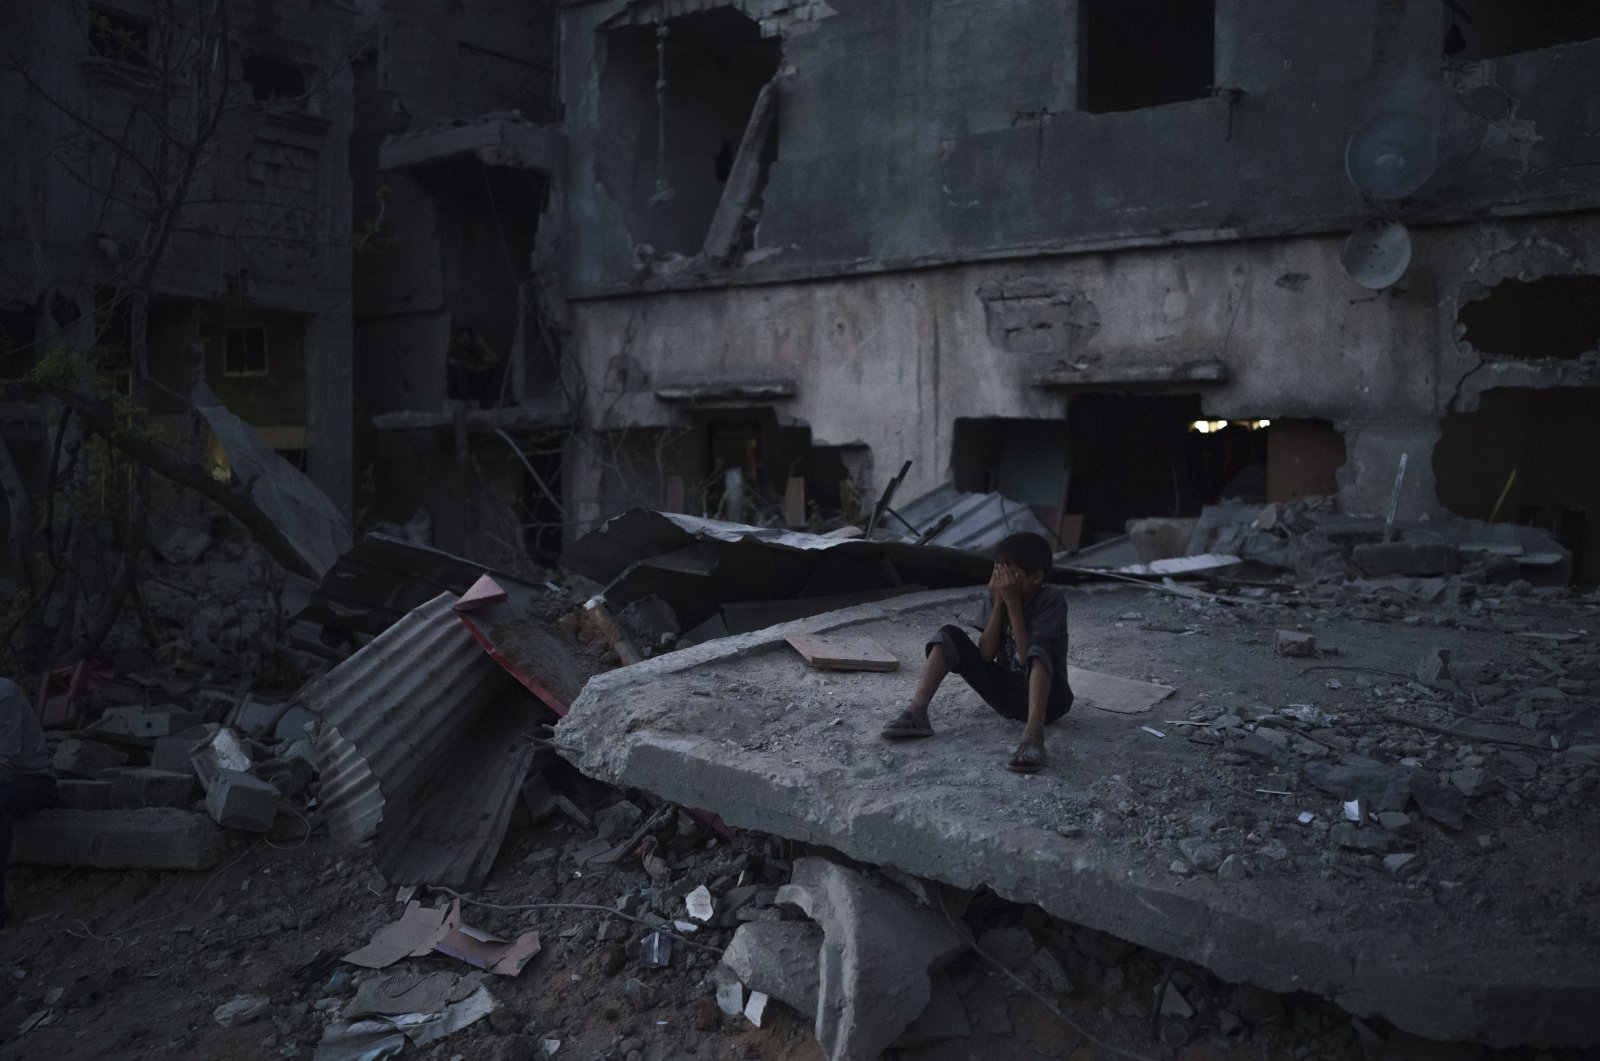 A boy sits on a destroyed building in a neighborhood heavily damaged by Israeli airstrikes, in Beit Hanoun, Gaza Strip, Palestine, May 31, 2021. (AP Photo)